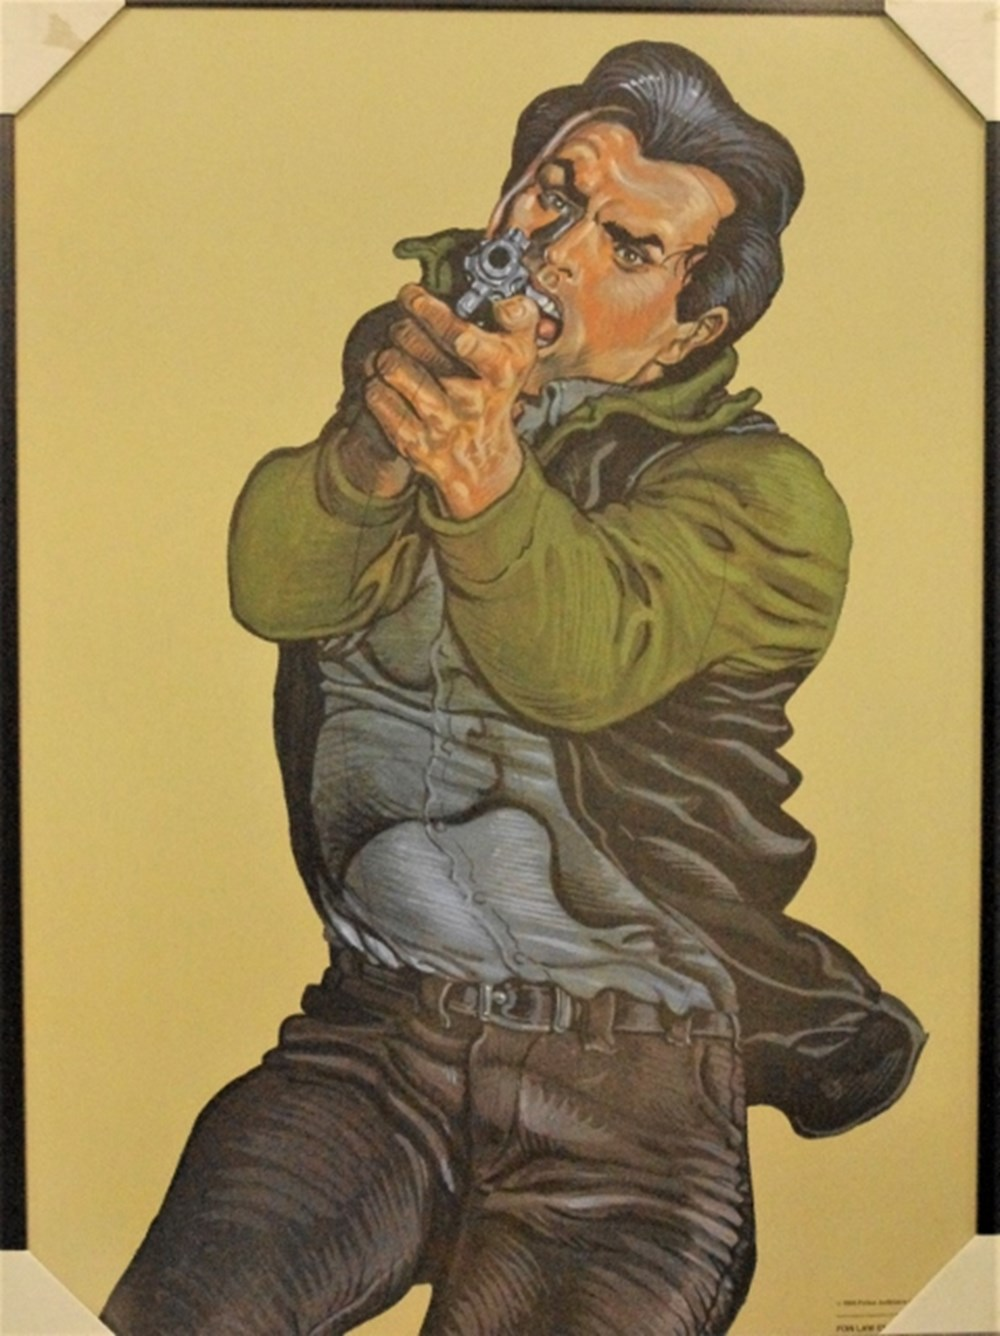 Lot 34. - Target practice poster,